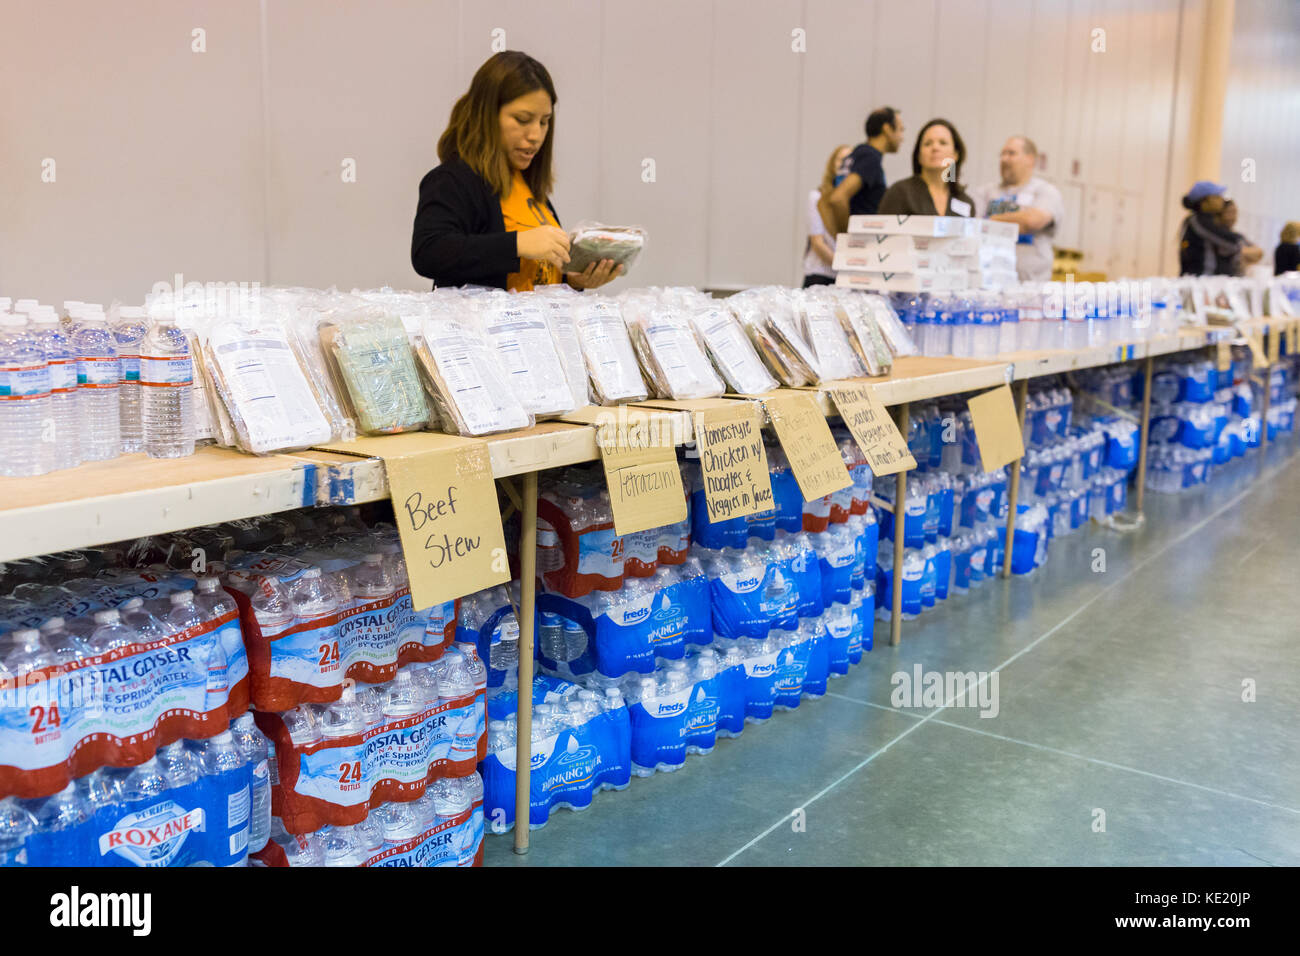 Torrential rain from Hurricane Harvey has caused record flooding in Houston. Emergency shelter is stocked with supplies - Stock Image